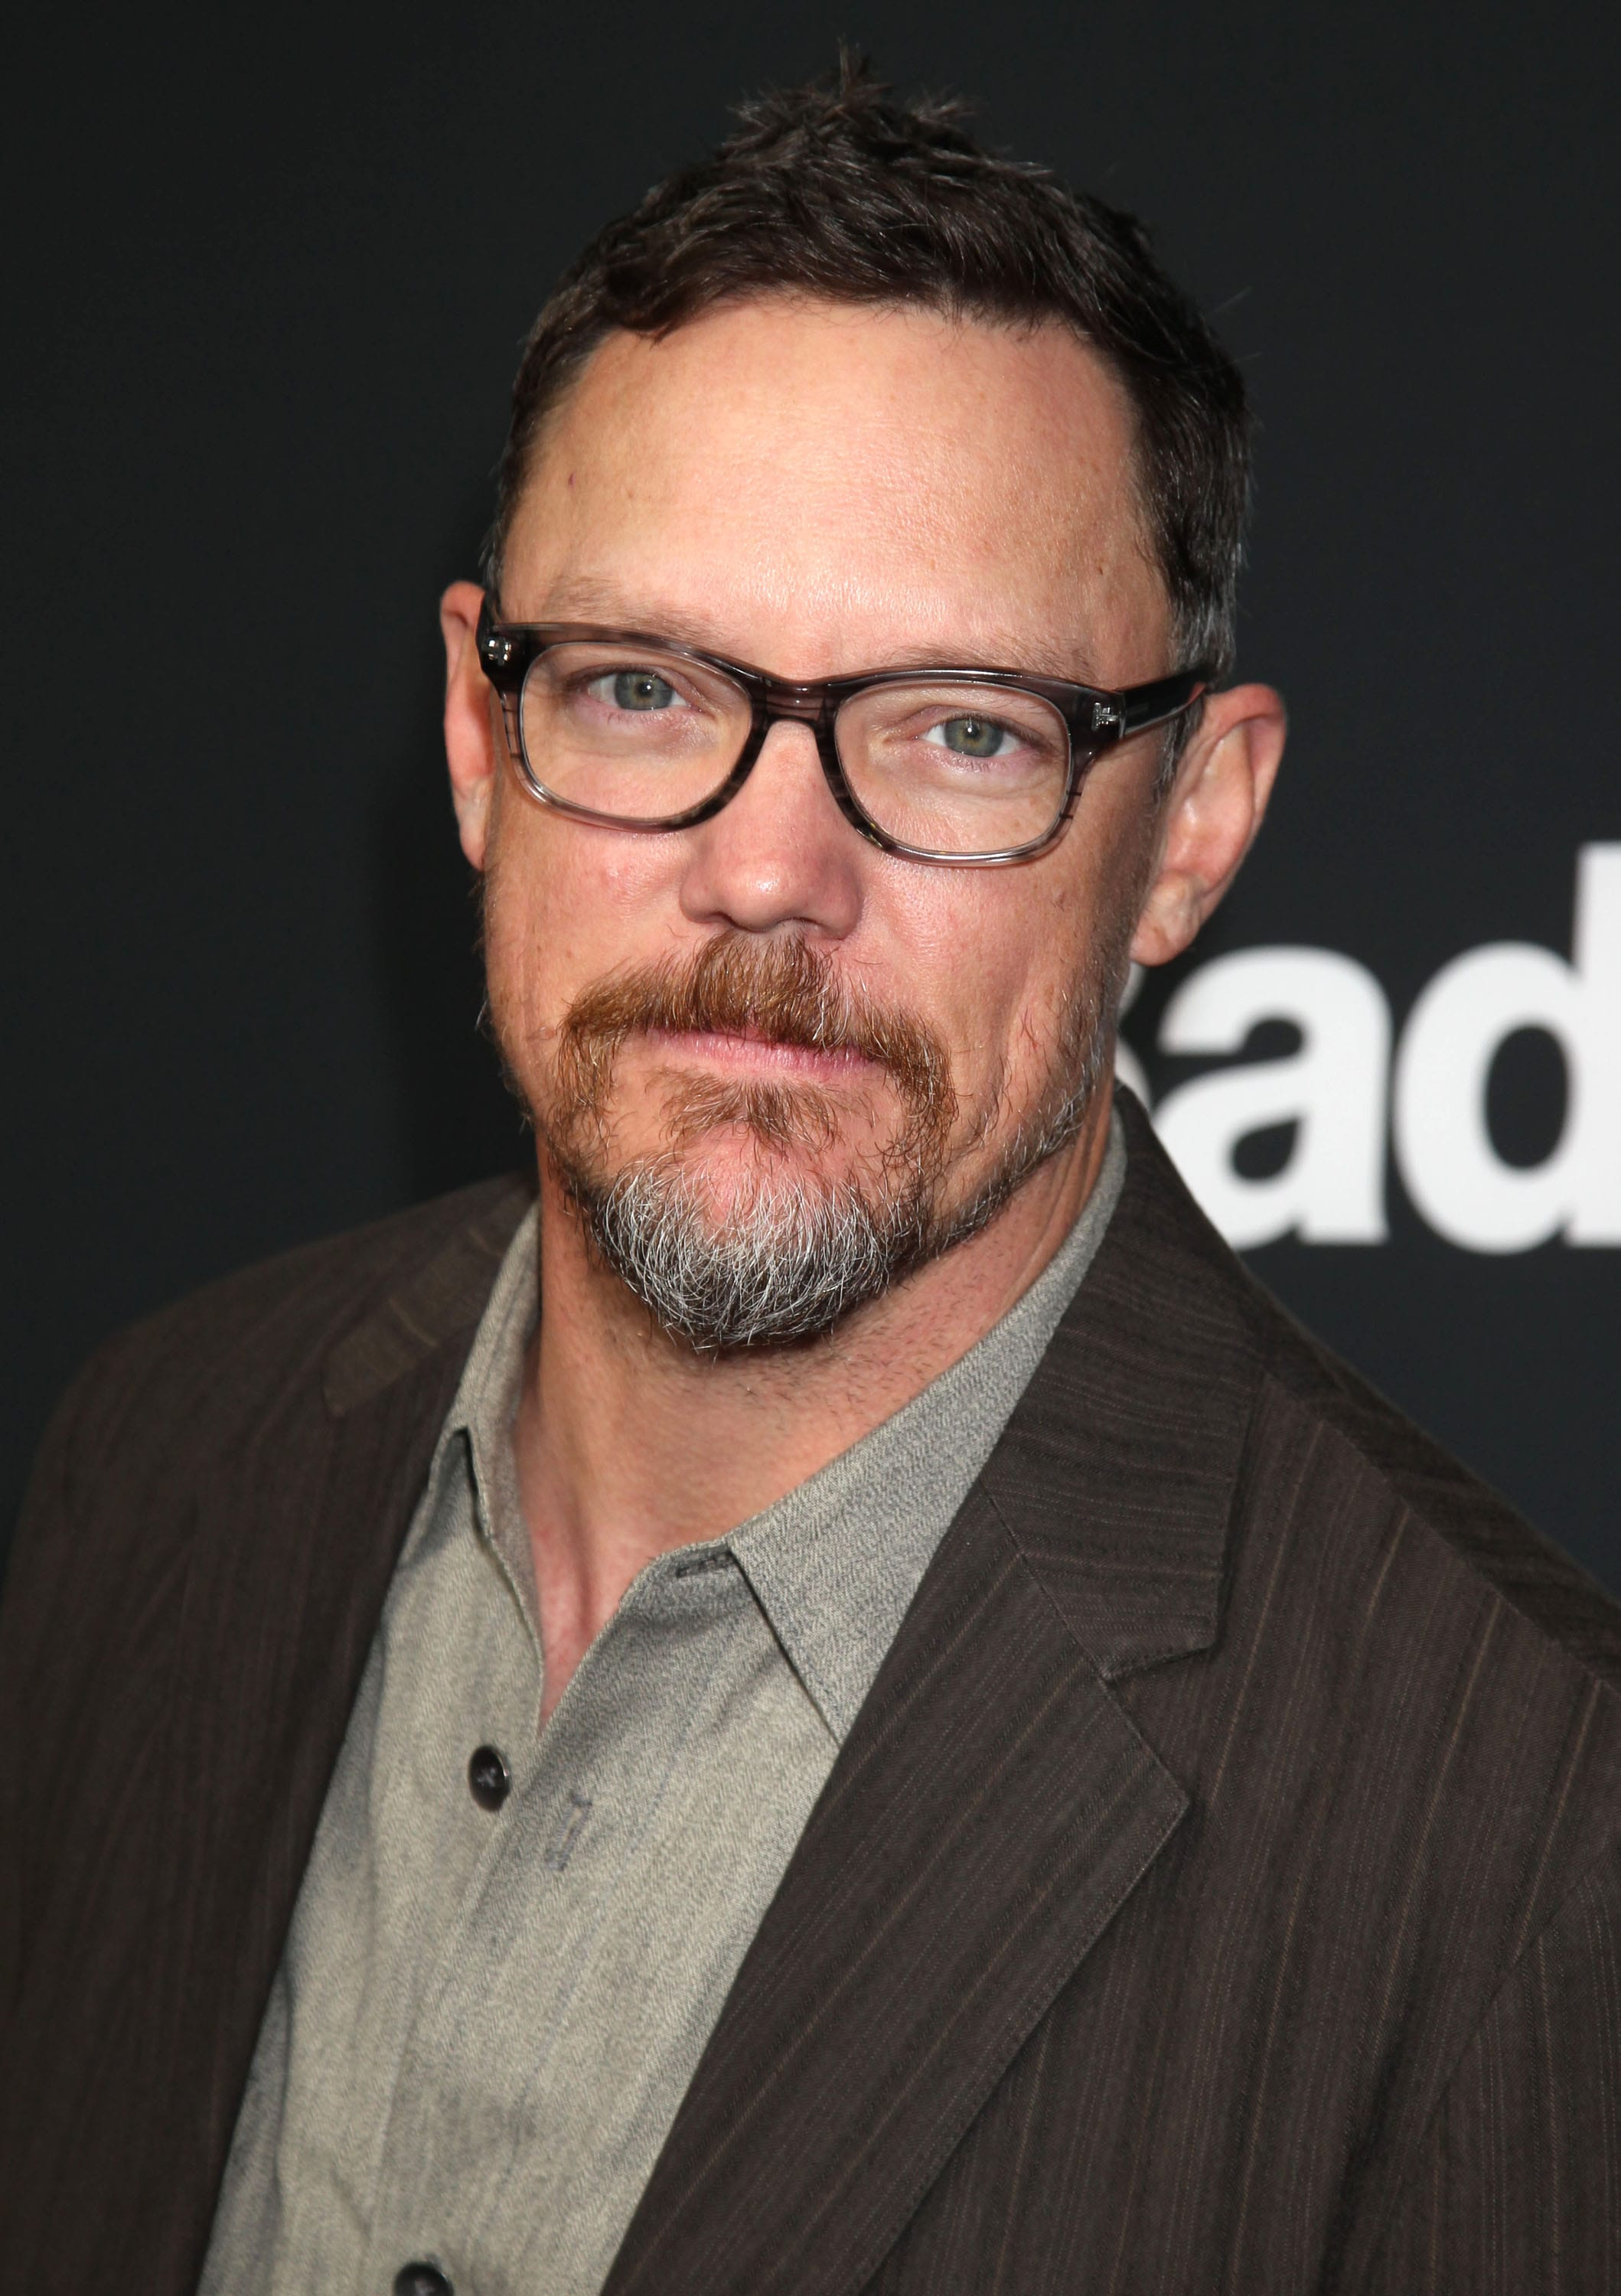 Matthew Lillard HQ wallpapers